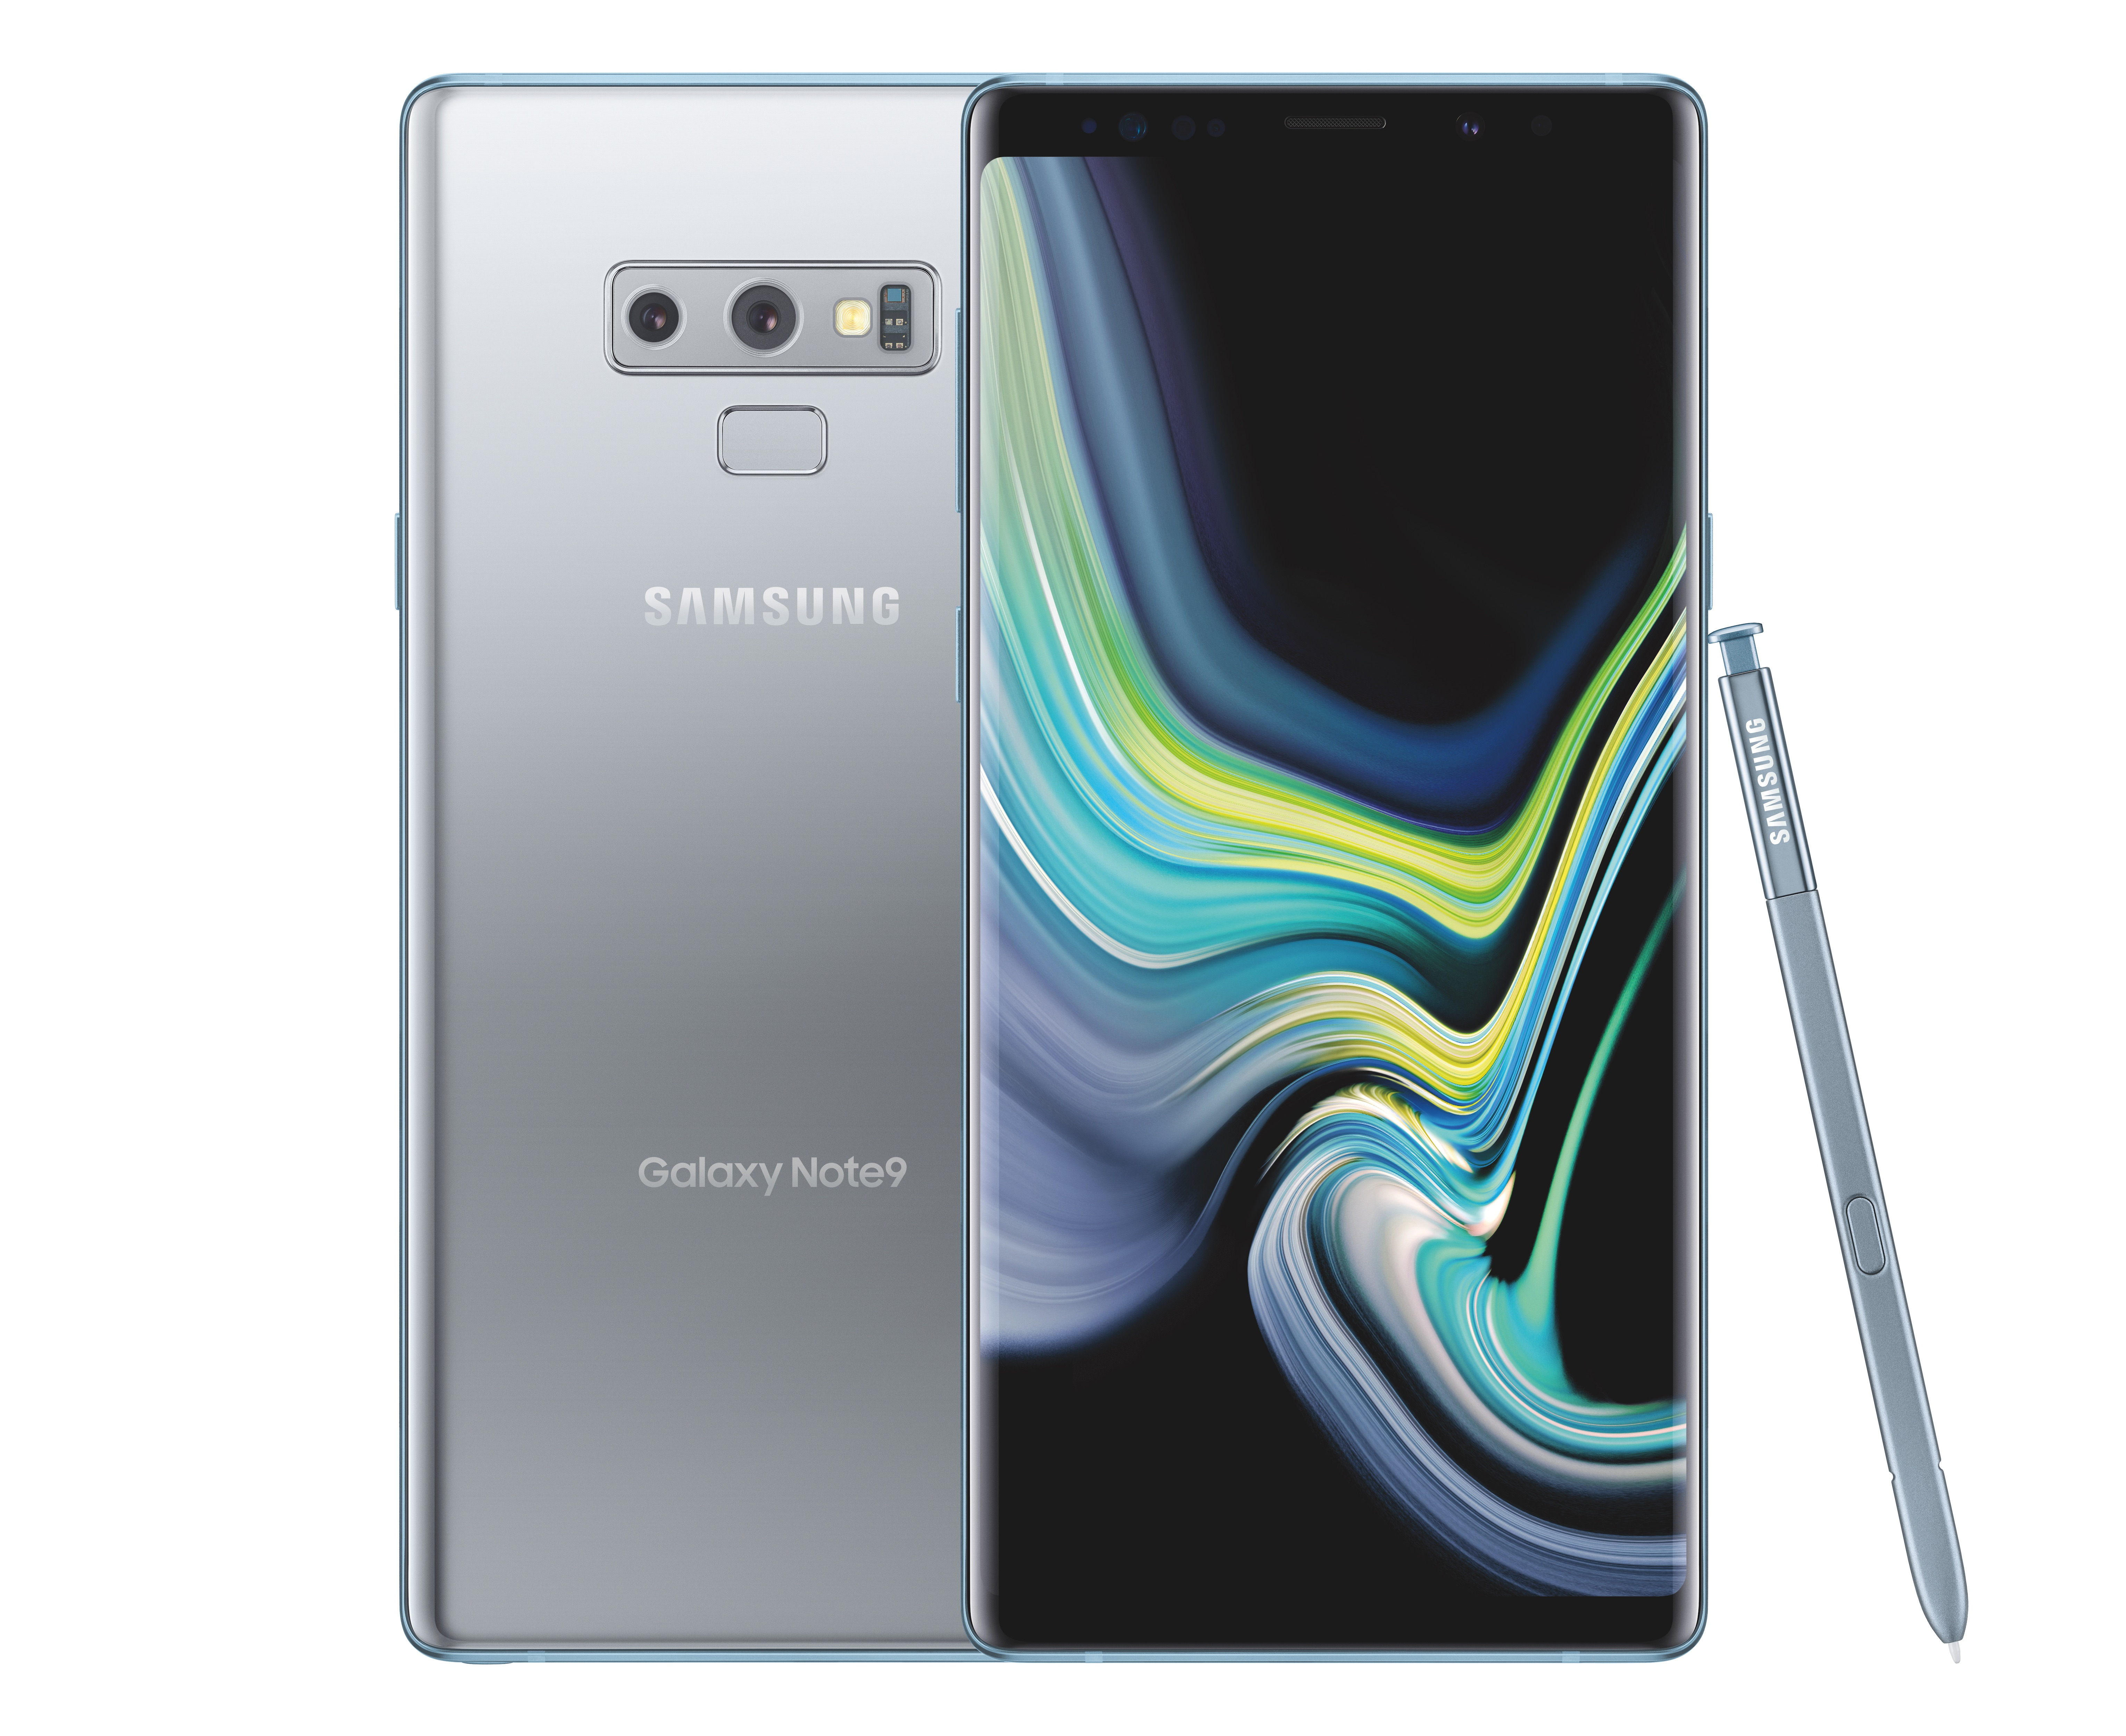 Update: Orders open] Samsung Galaxy Note9 to soon be